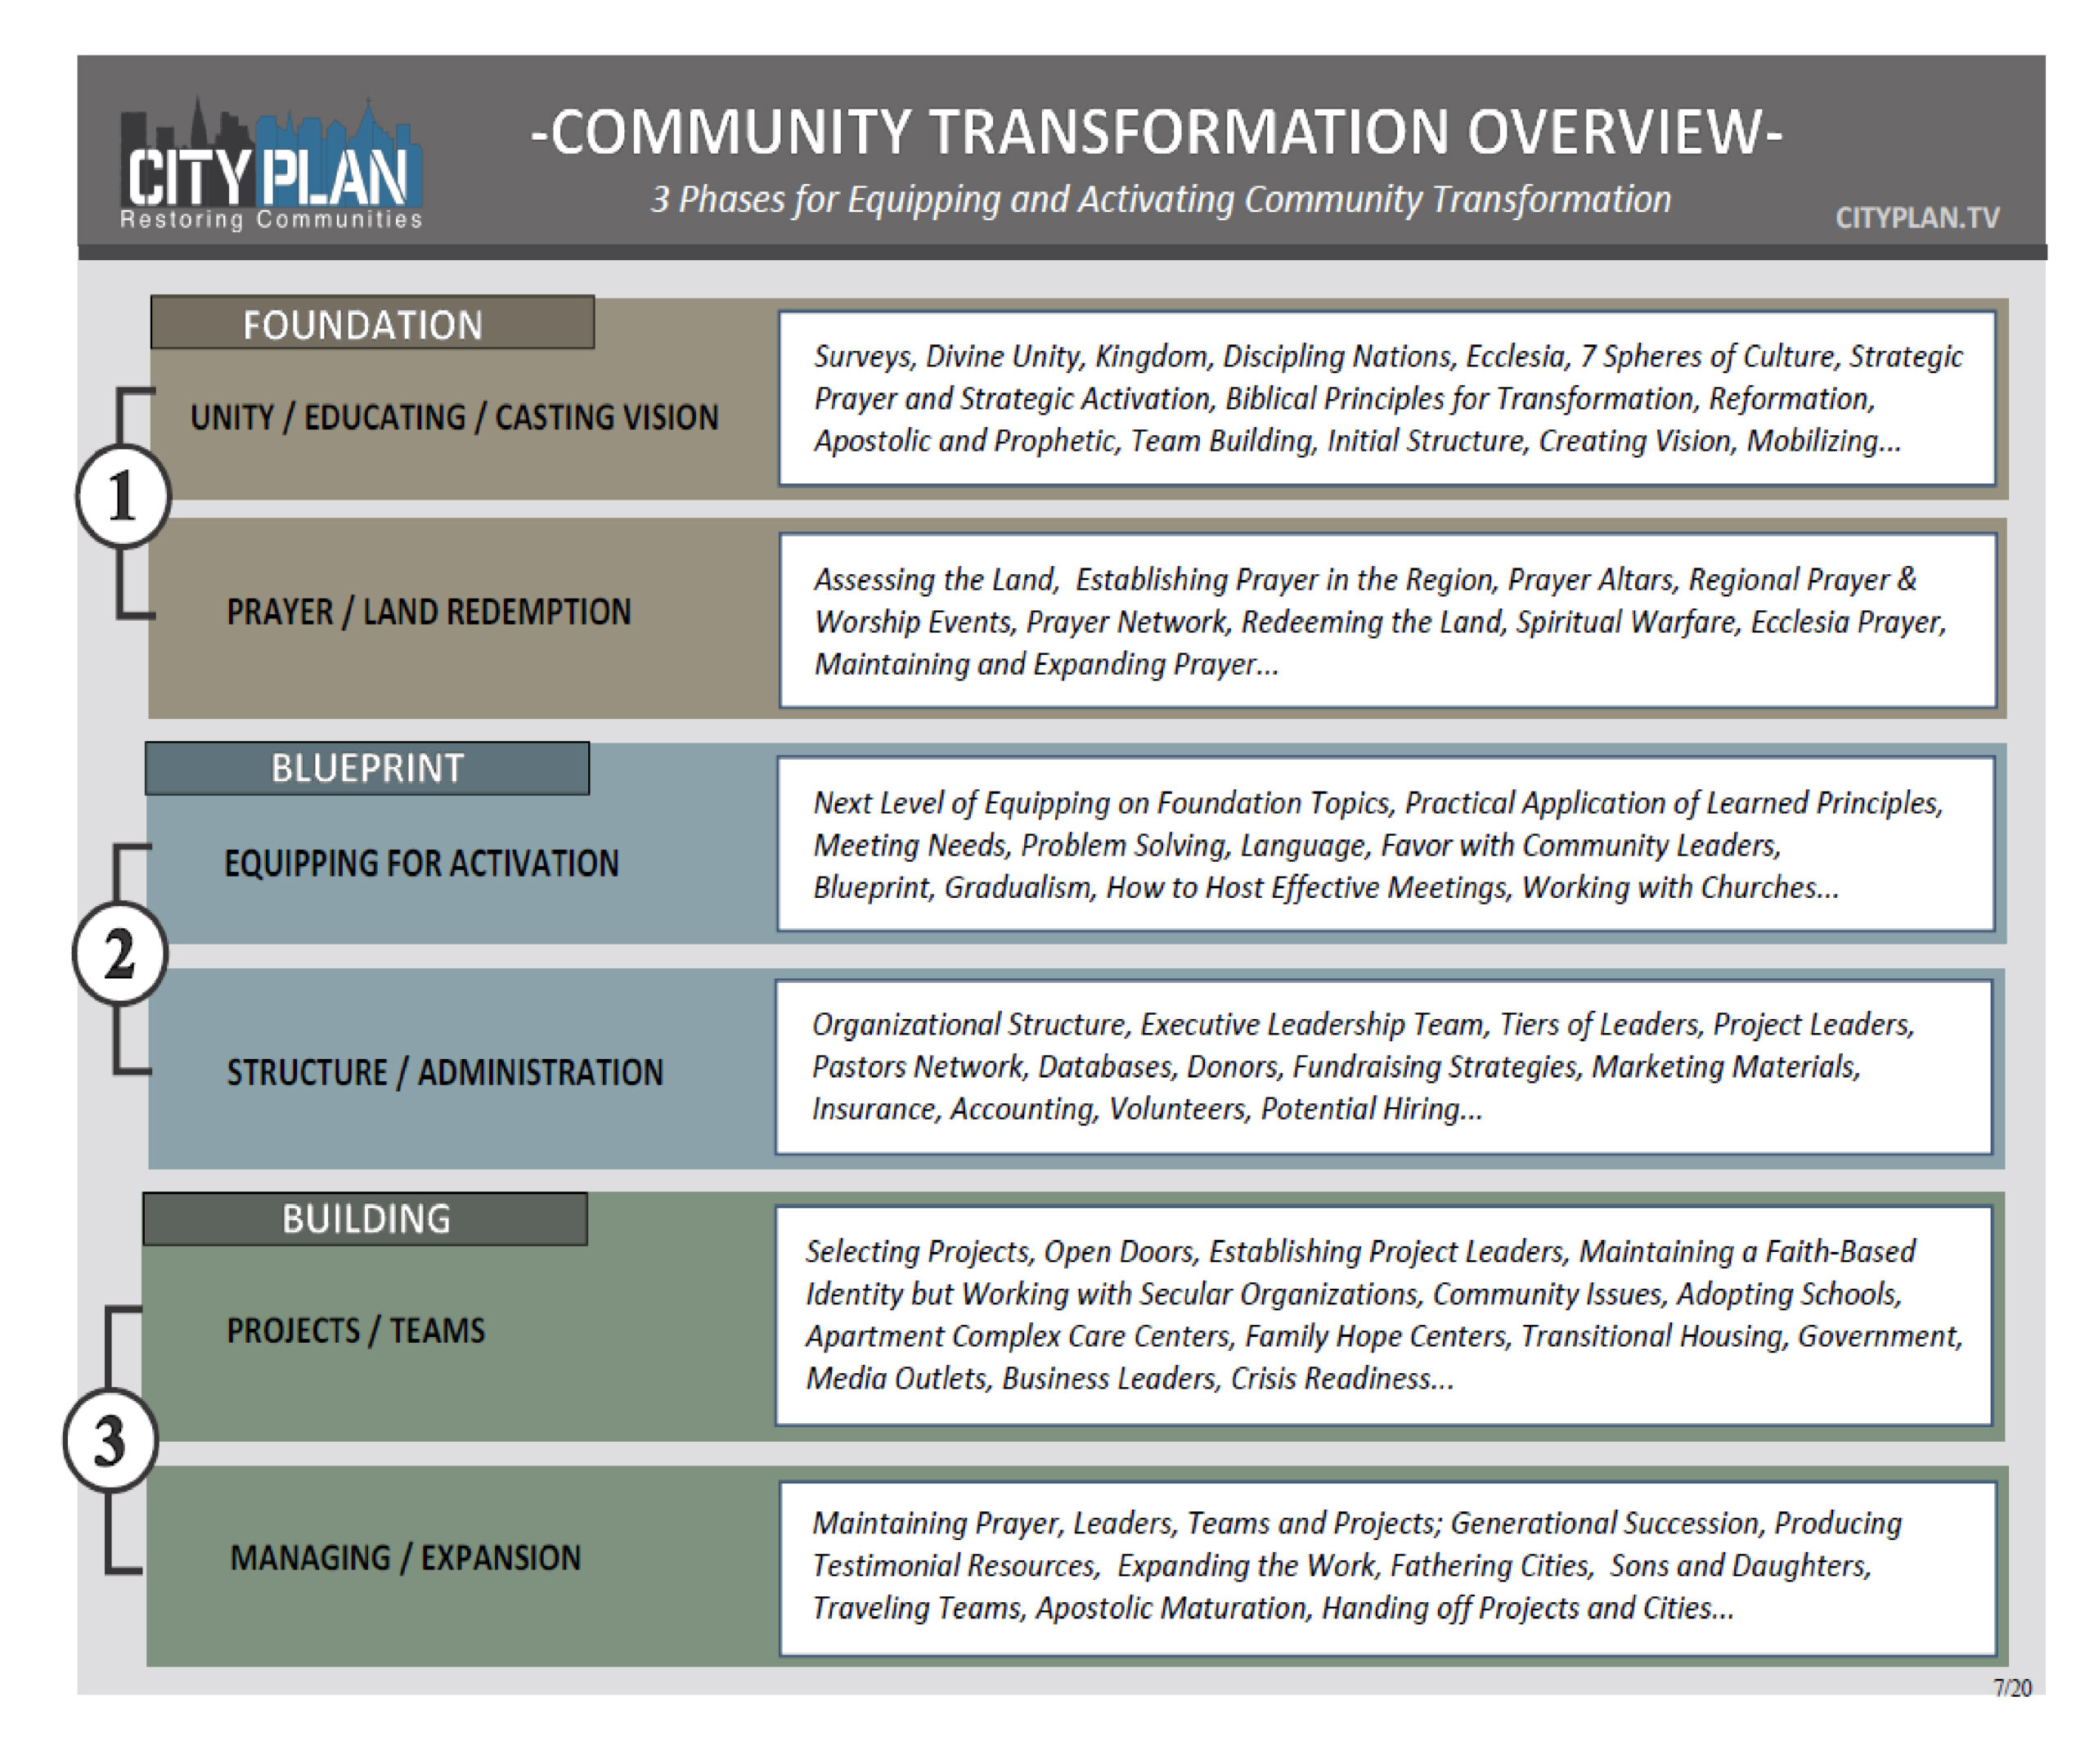 Community Transformation Overview (image)